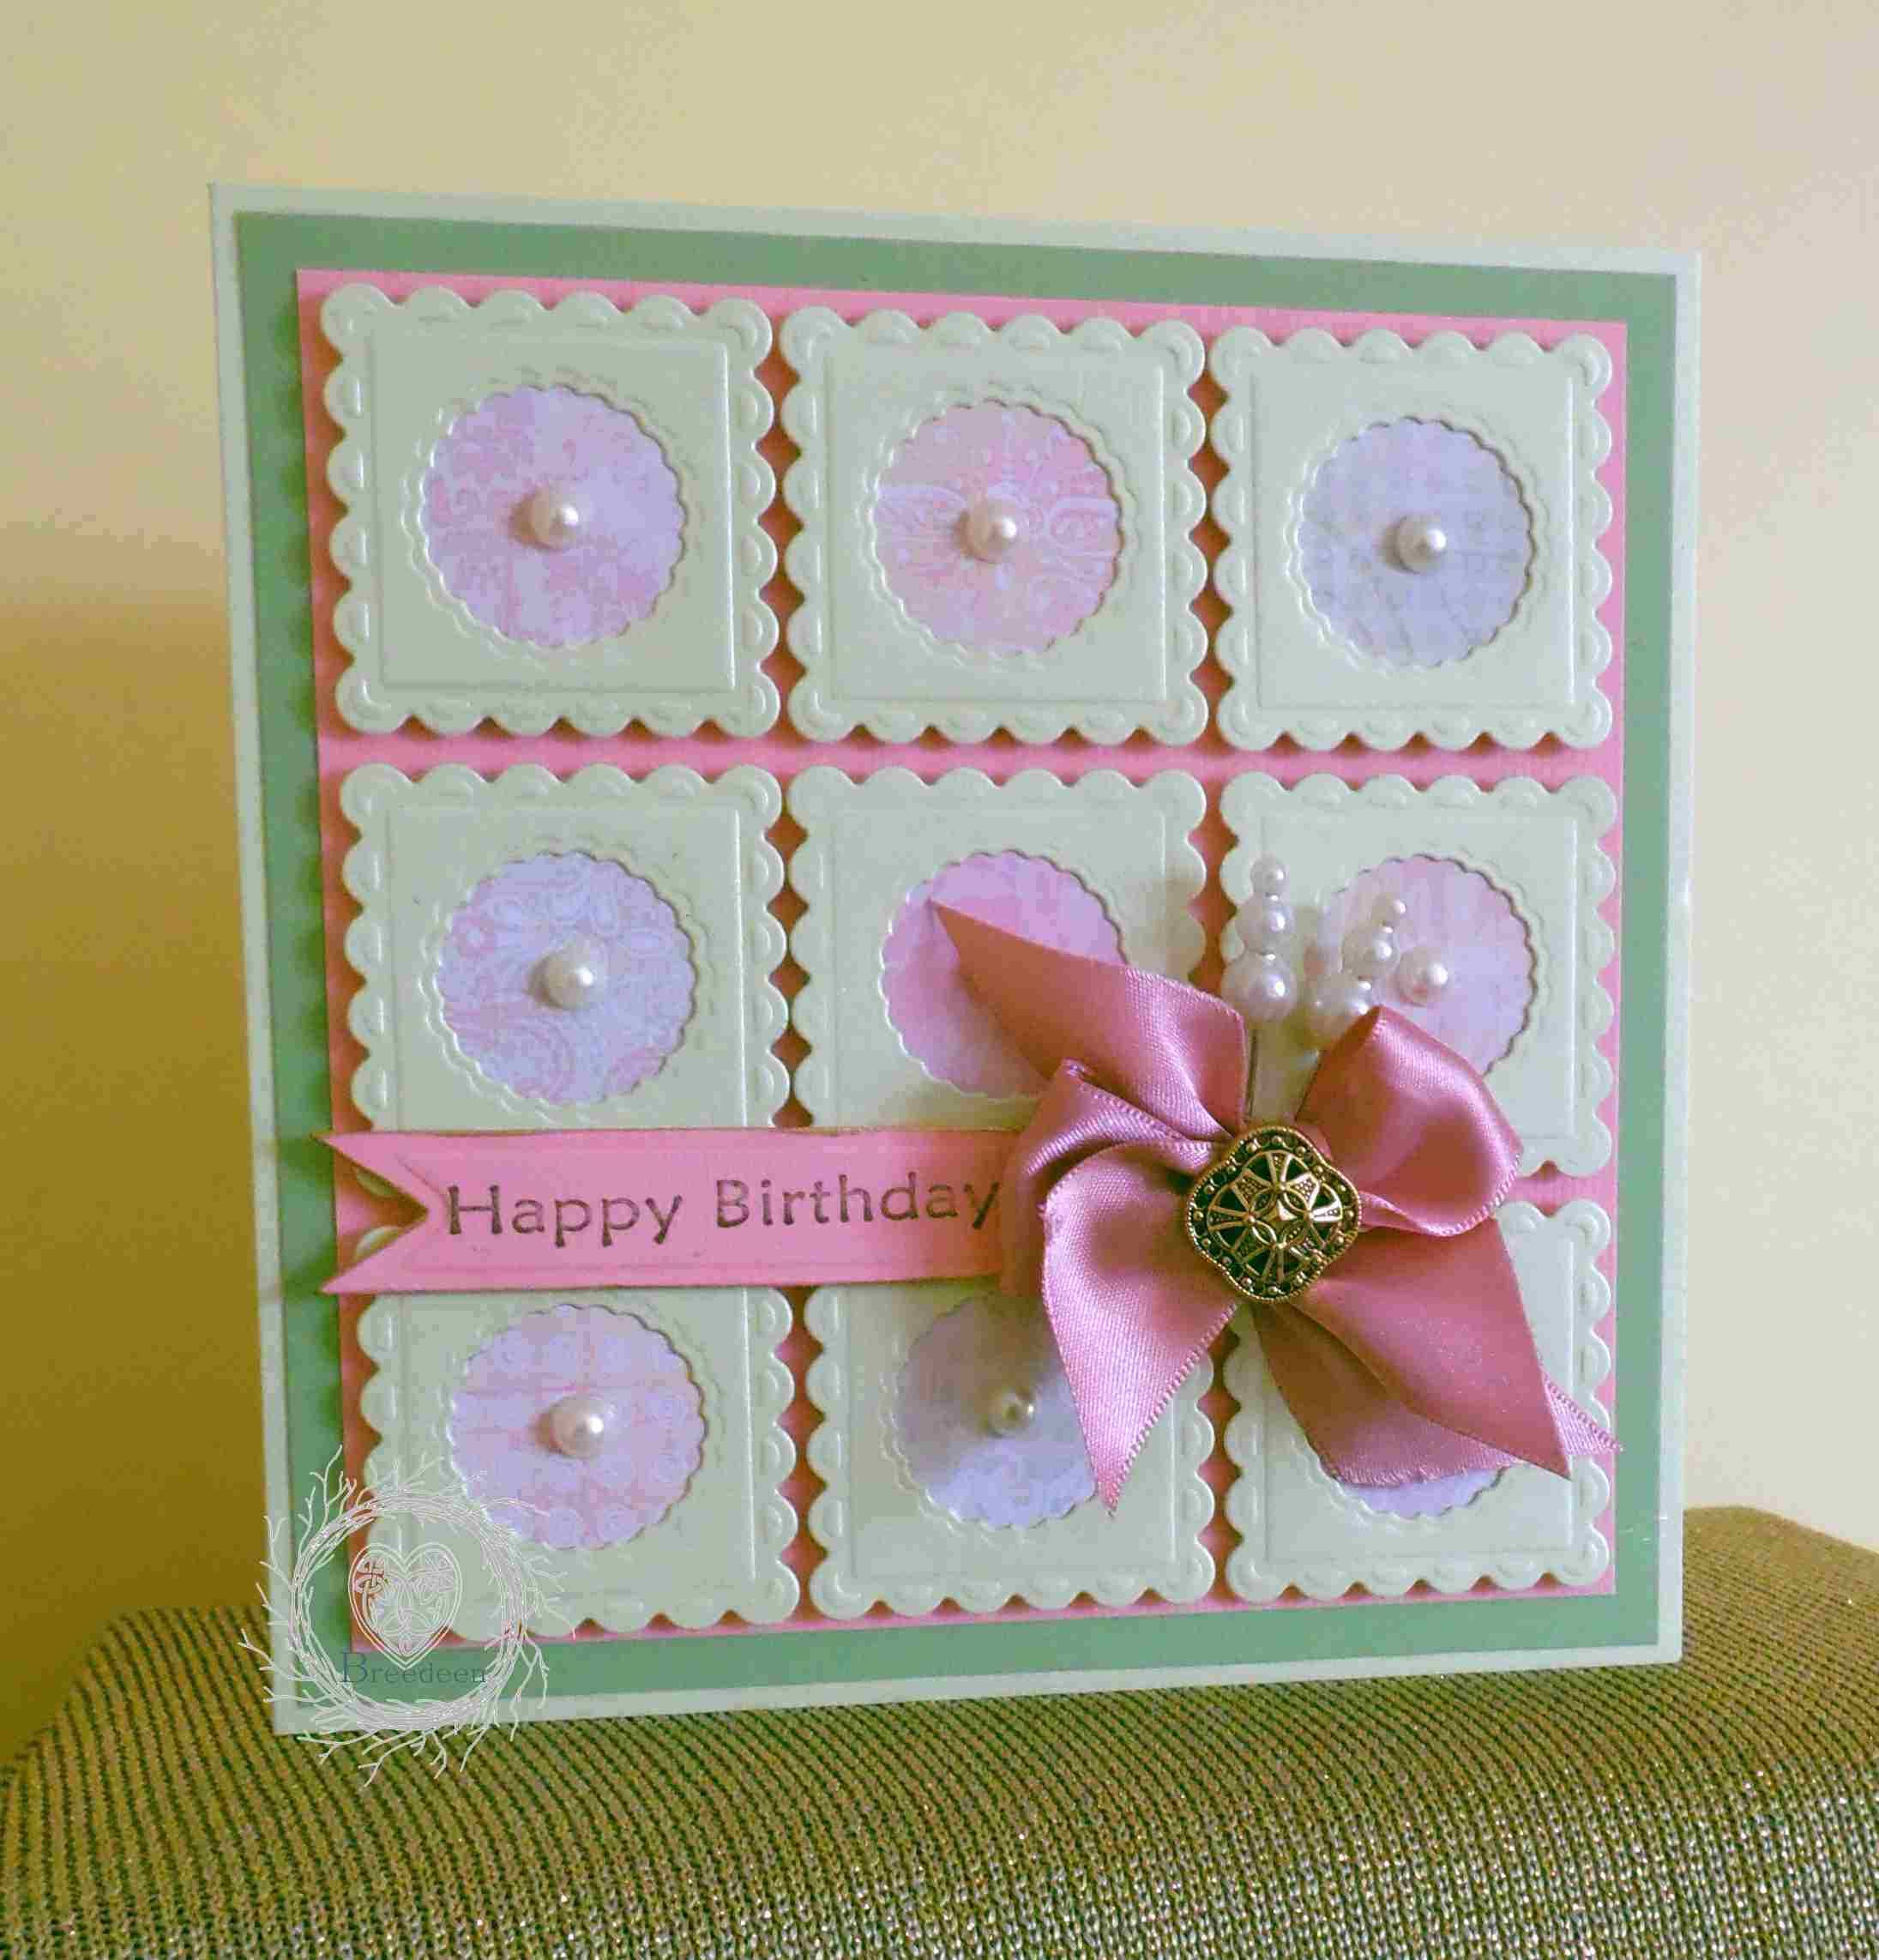 Birthday Card Creative Cards Pinterest Cards Scrapbooks And